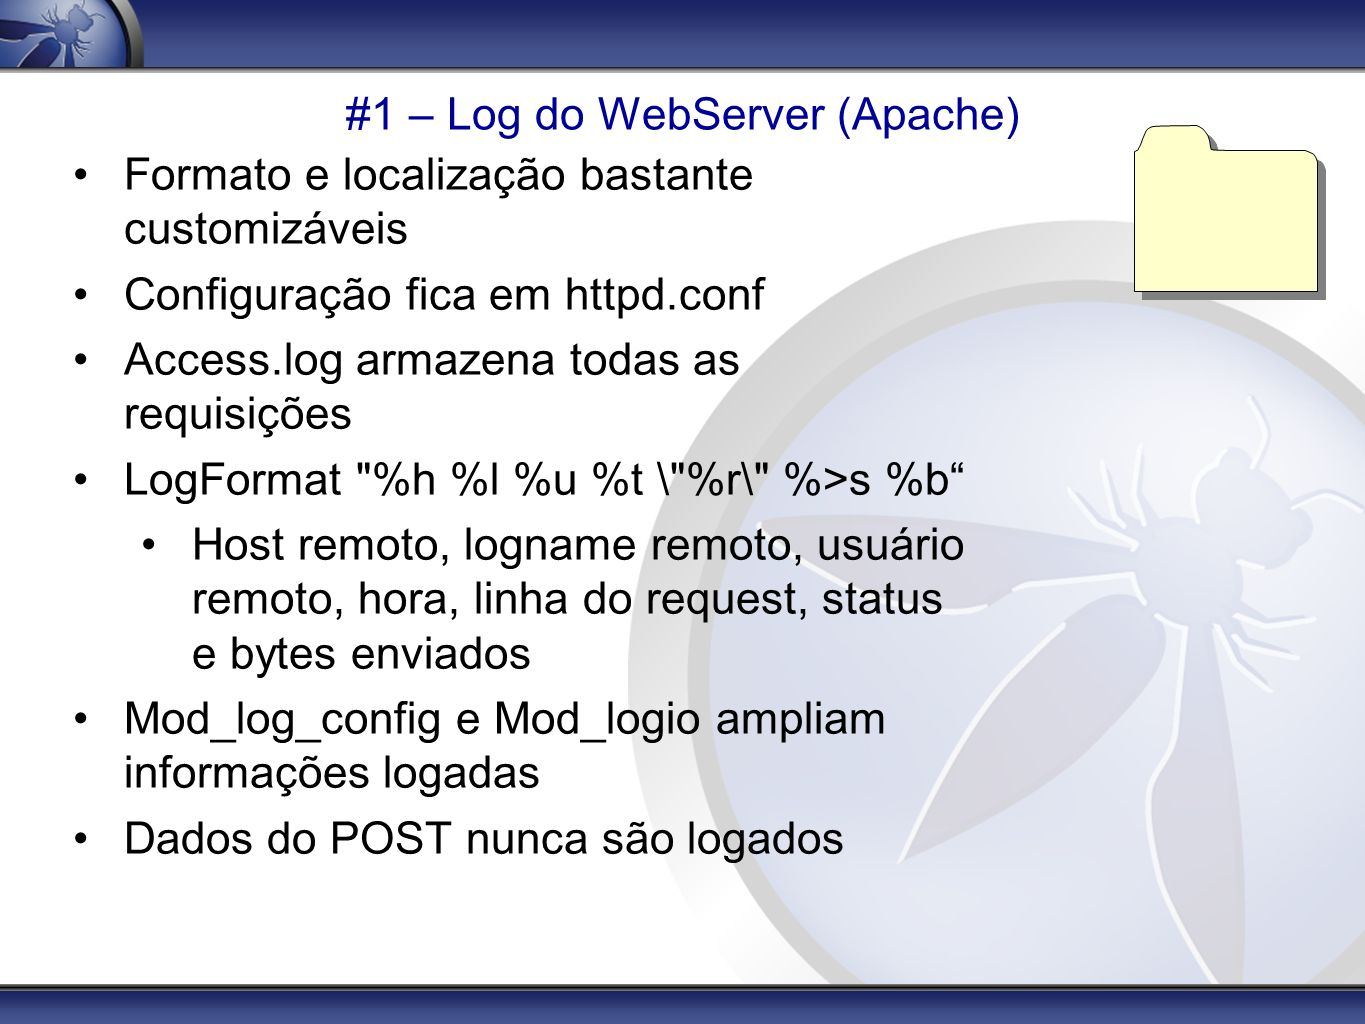 #1 – Log do WebServer (Apache)